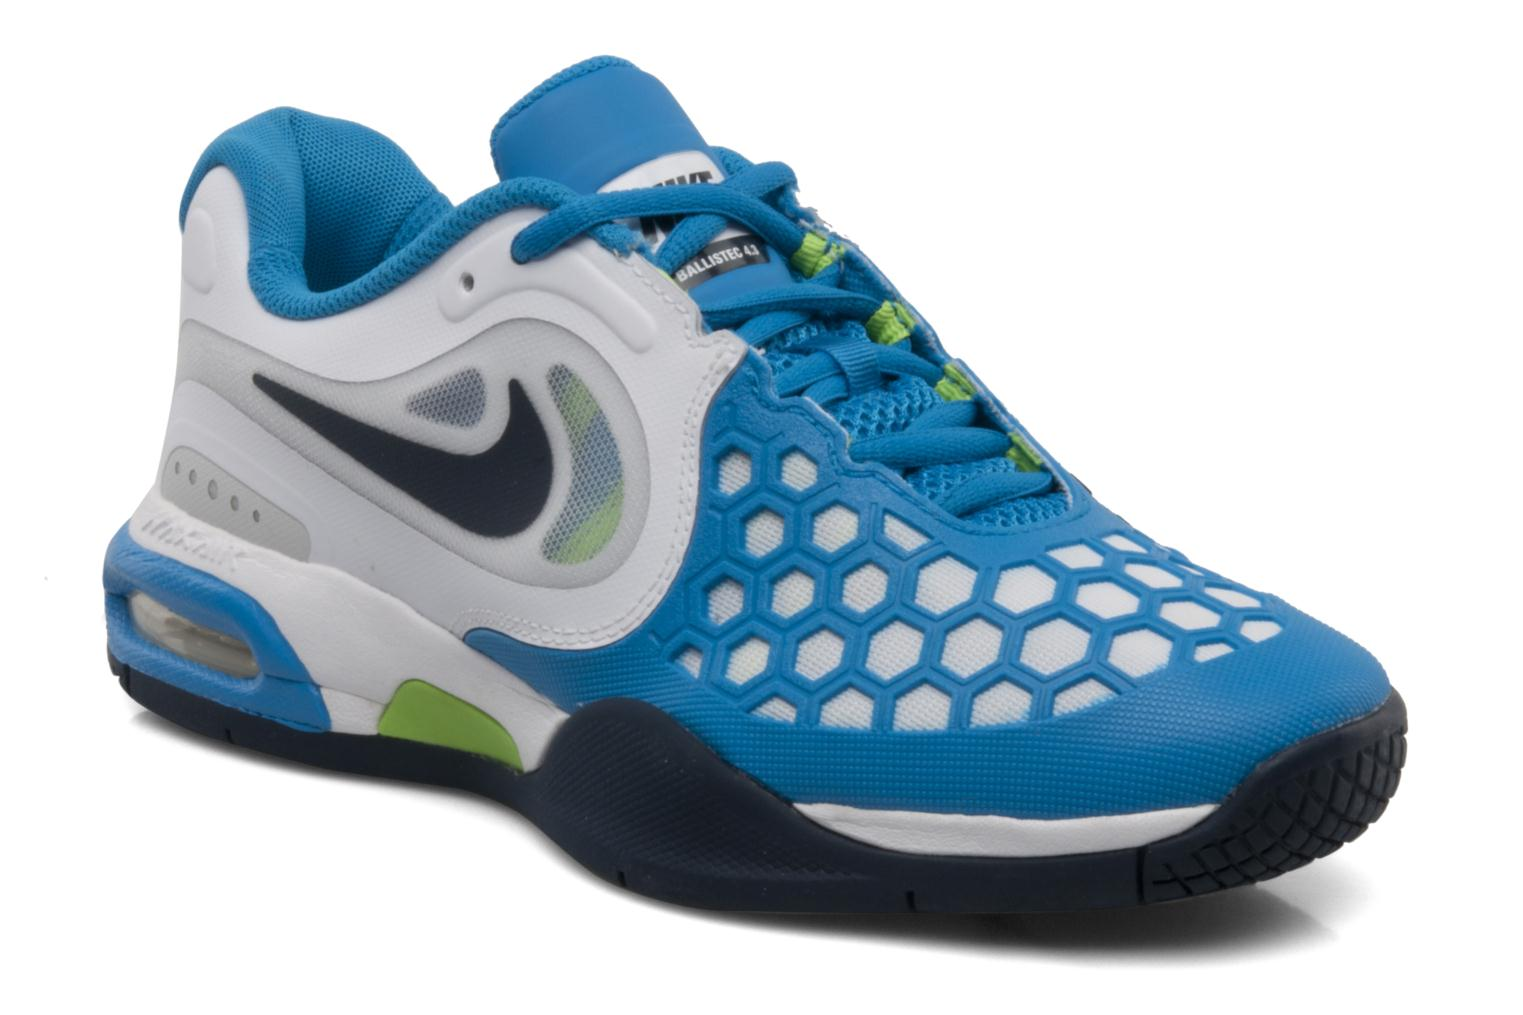 new product f25a2 e36b8 ... Air max courtballistec 4.3 bg White obsidian-nptn blue-blck  nike ...